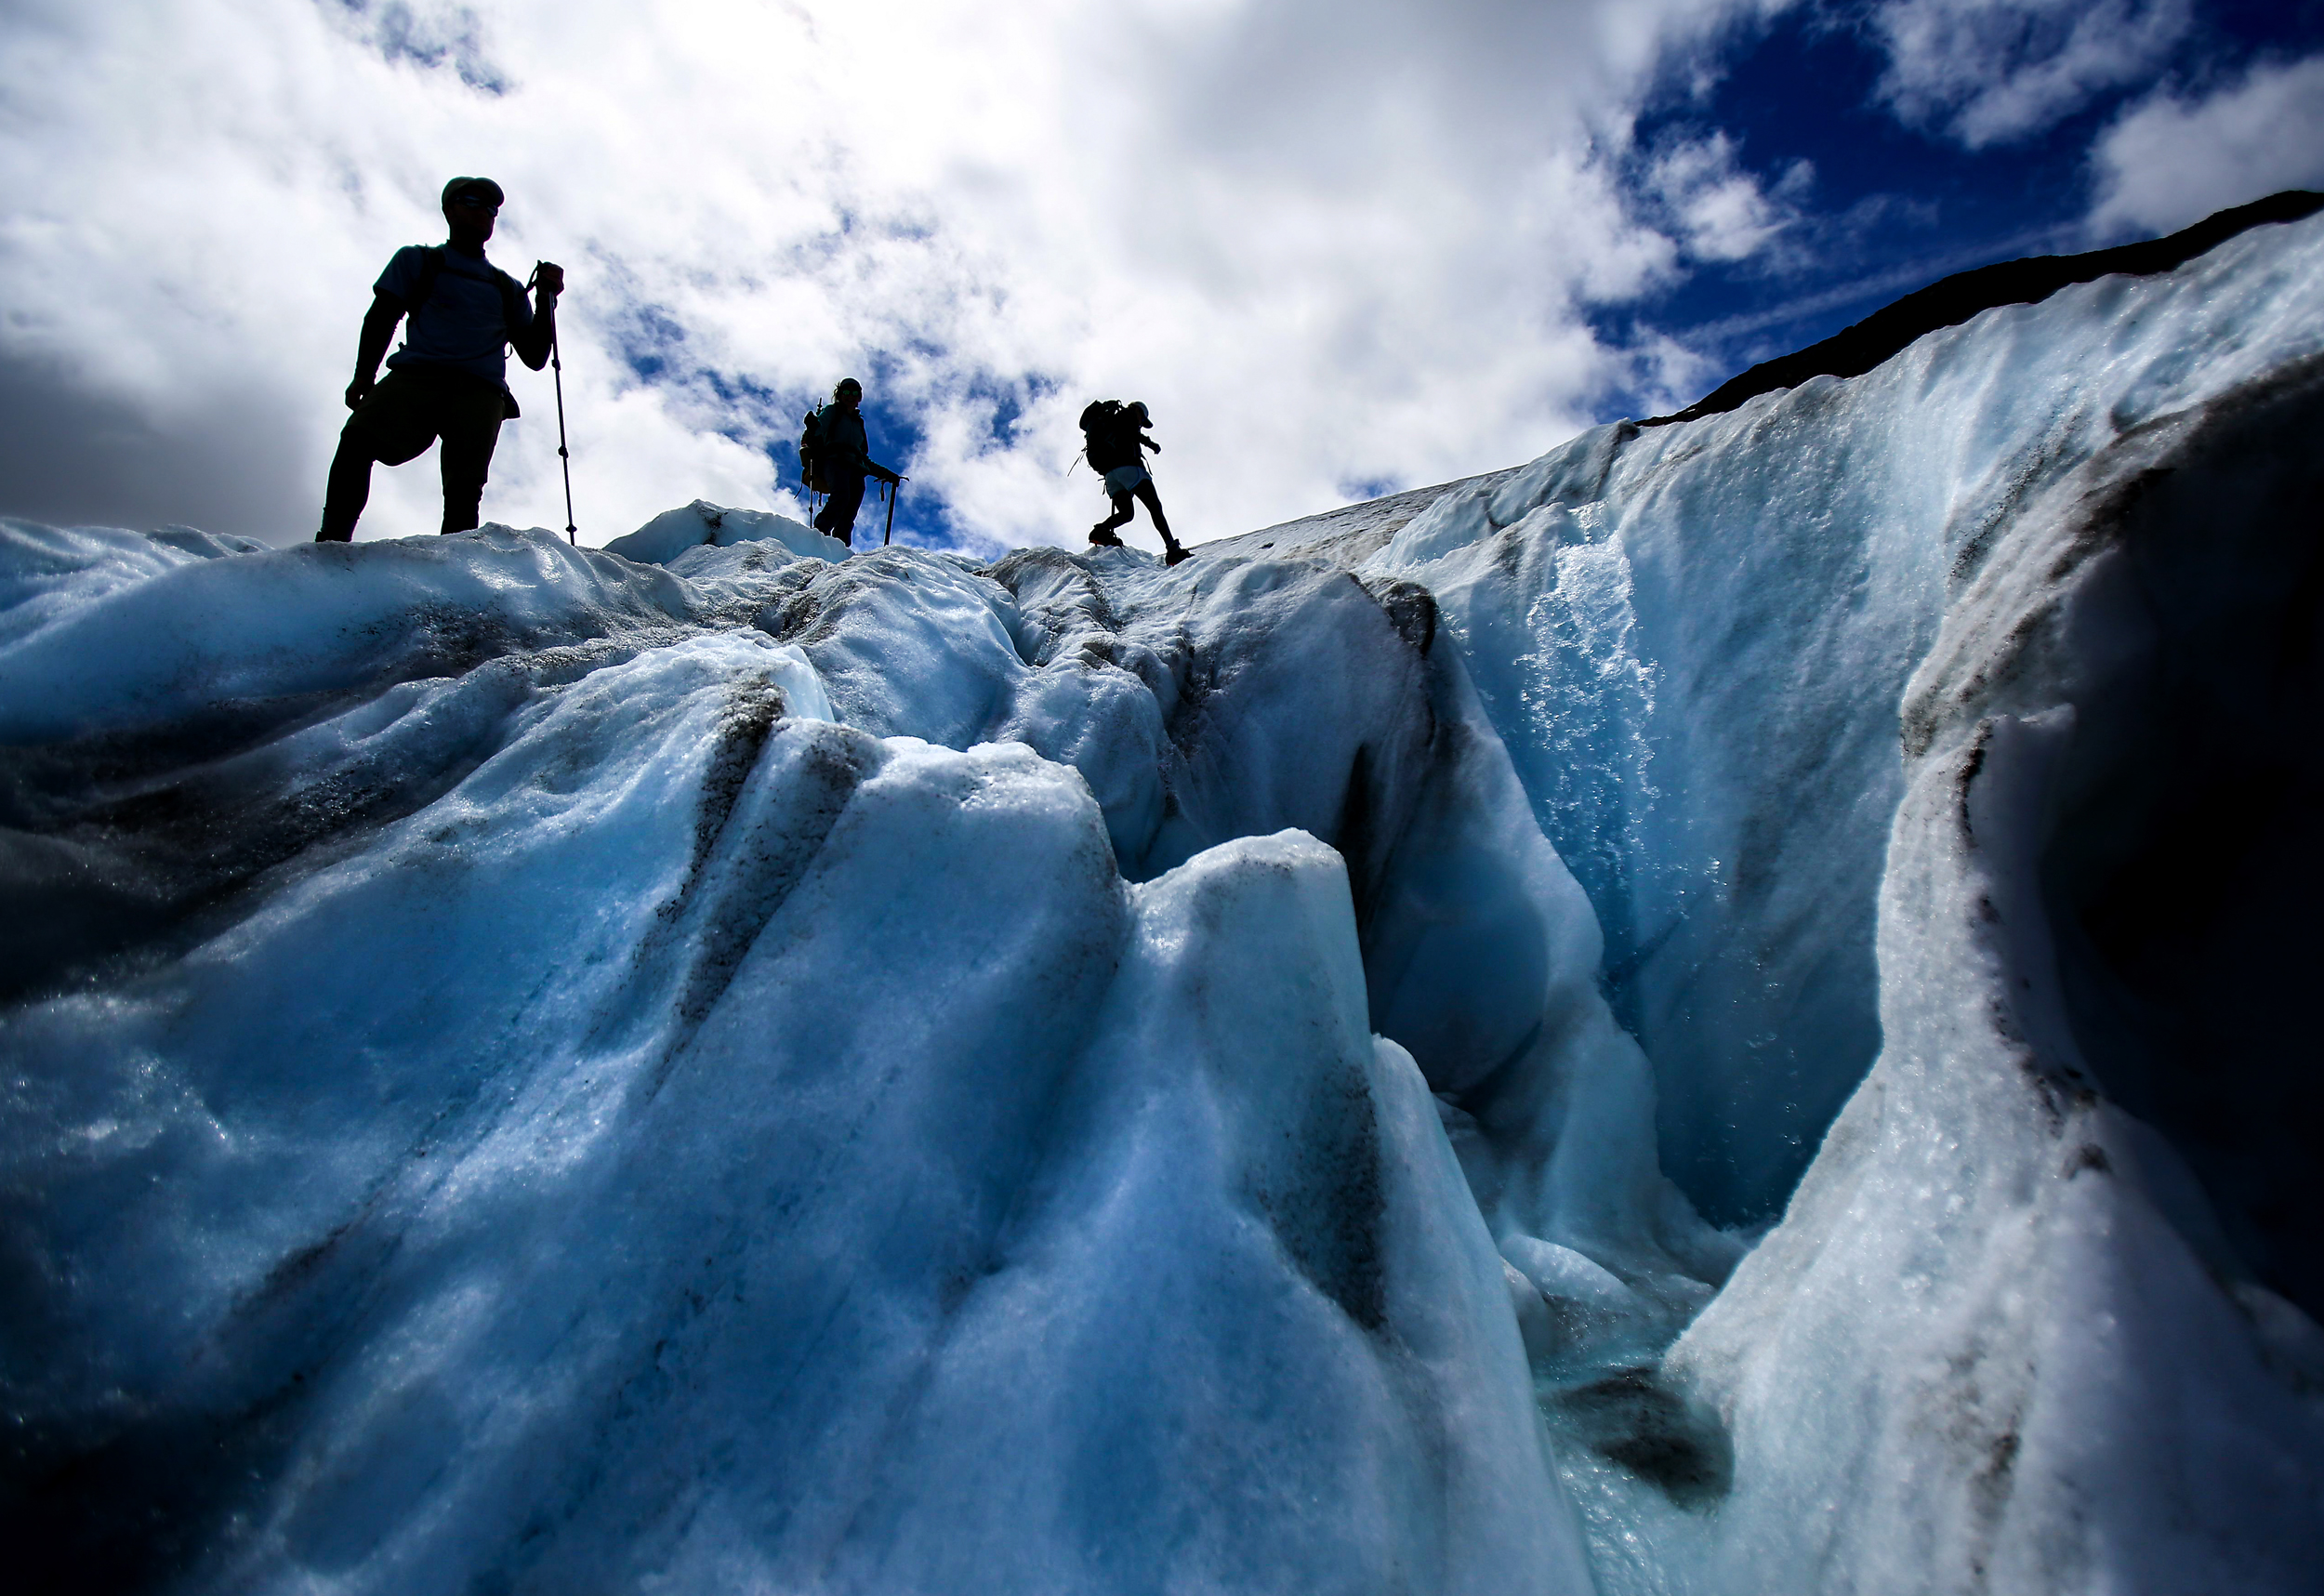 'Disastrous': Low snow, heat eat away at Northwest glaciers   Glaciers across the North Cascades could lose 5 to 10 percent of their volume this year, accelerating decades of steady decline. One scientist estimates the region's glaciers are smaller than they have been in at least 4,000 years.